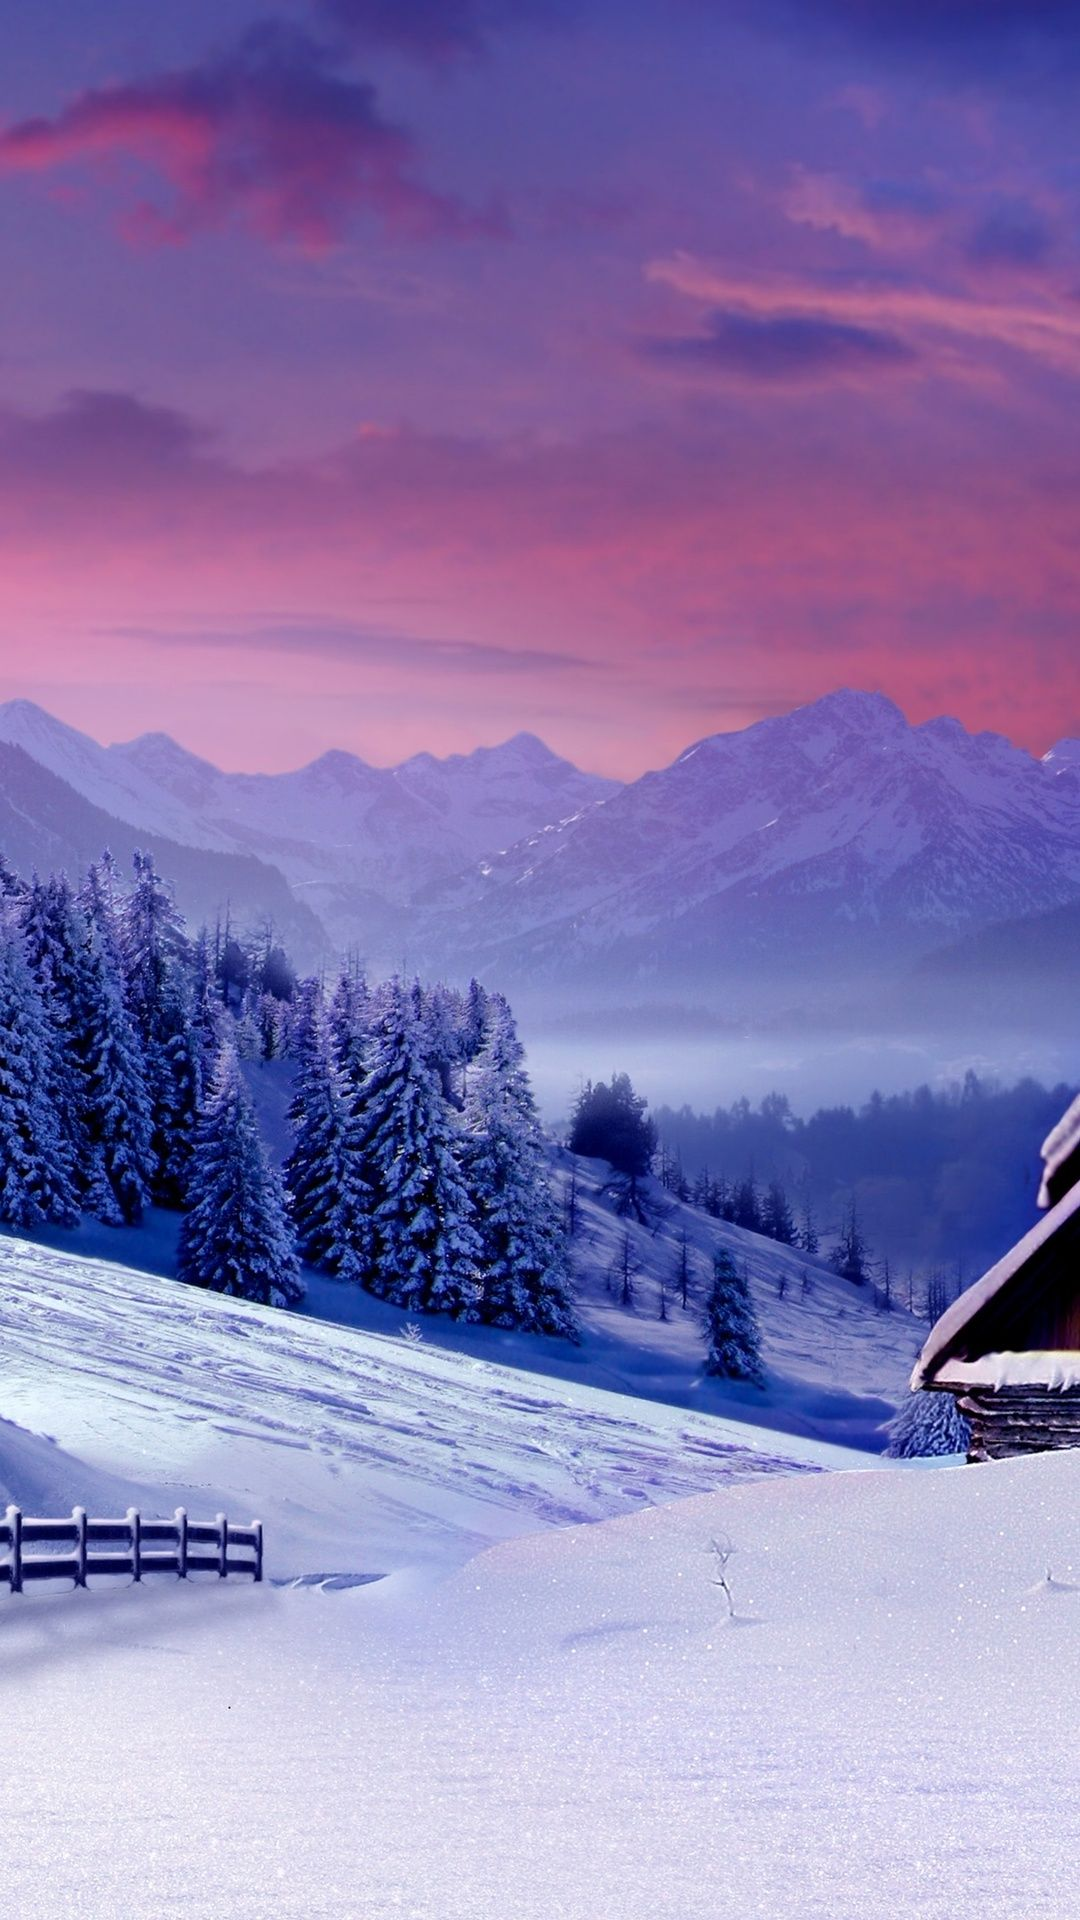 Winter Landscape 4k Ultra Hd Wallpaper 4k Wallpaper Net Iphone Wallpaper Winter Winter Iphone Winter Wallpaper